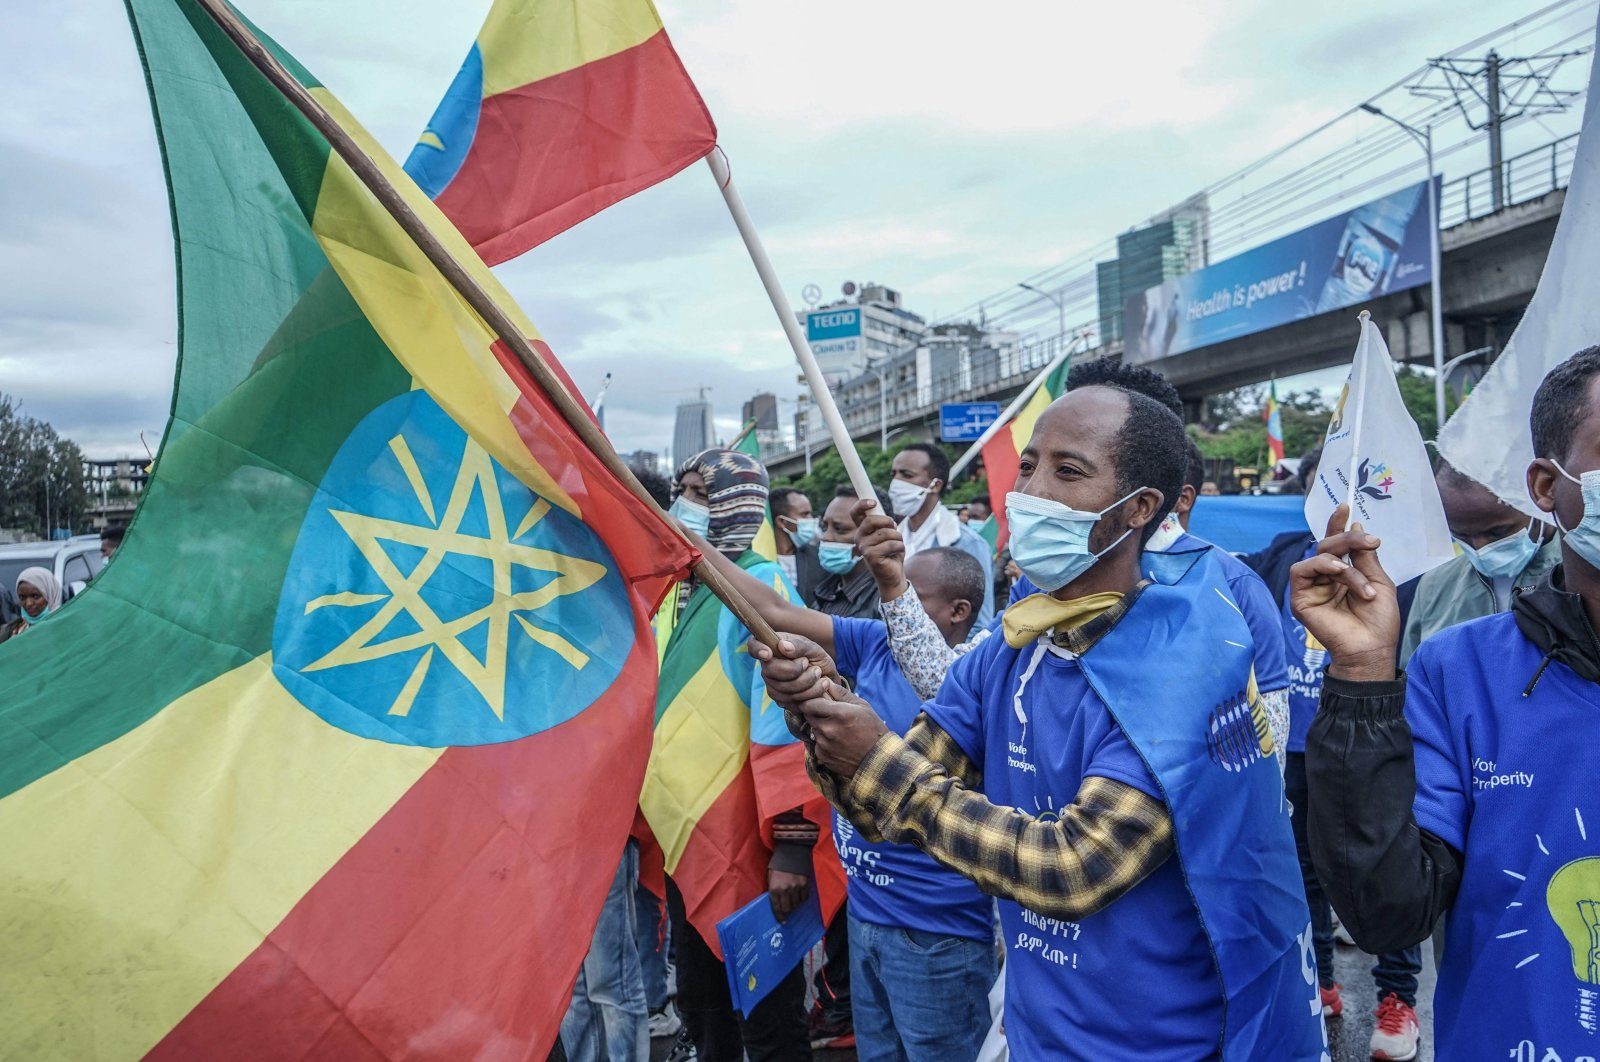 A Supporter of the Prosperity Party waves Ethiopia's national flag during the electoral campaign rally for the general elections in Addis Ababa, Ethiopia, on May 7, 2021. (AFP Photo)